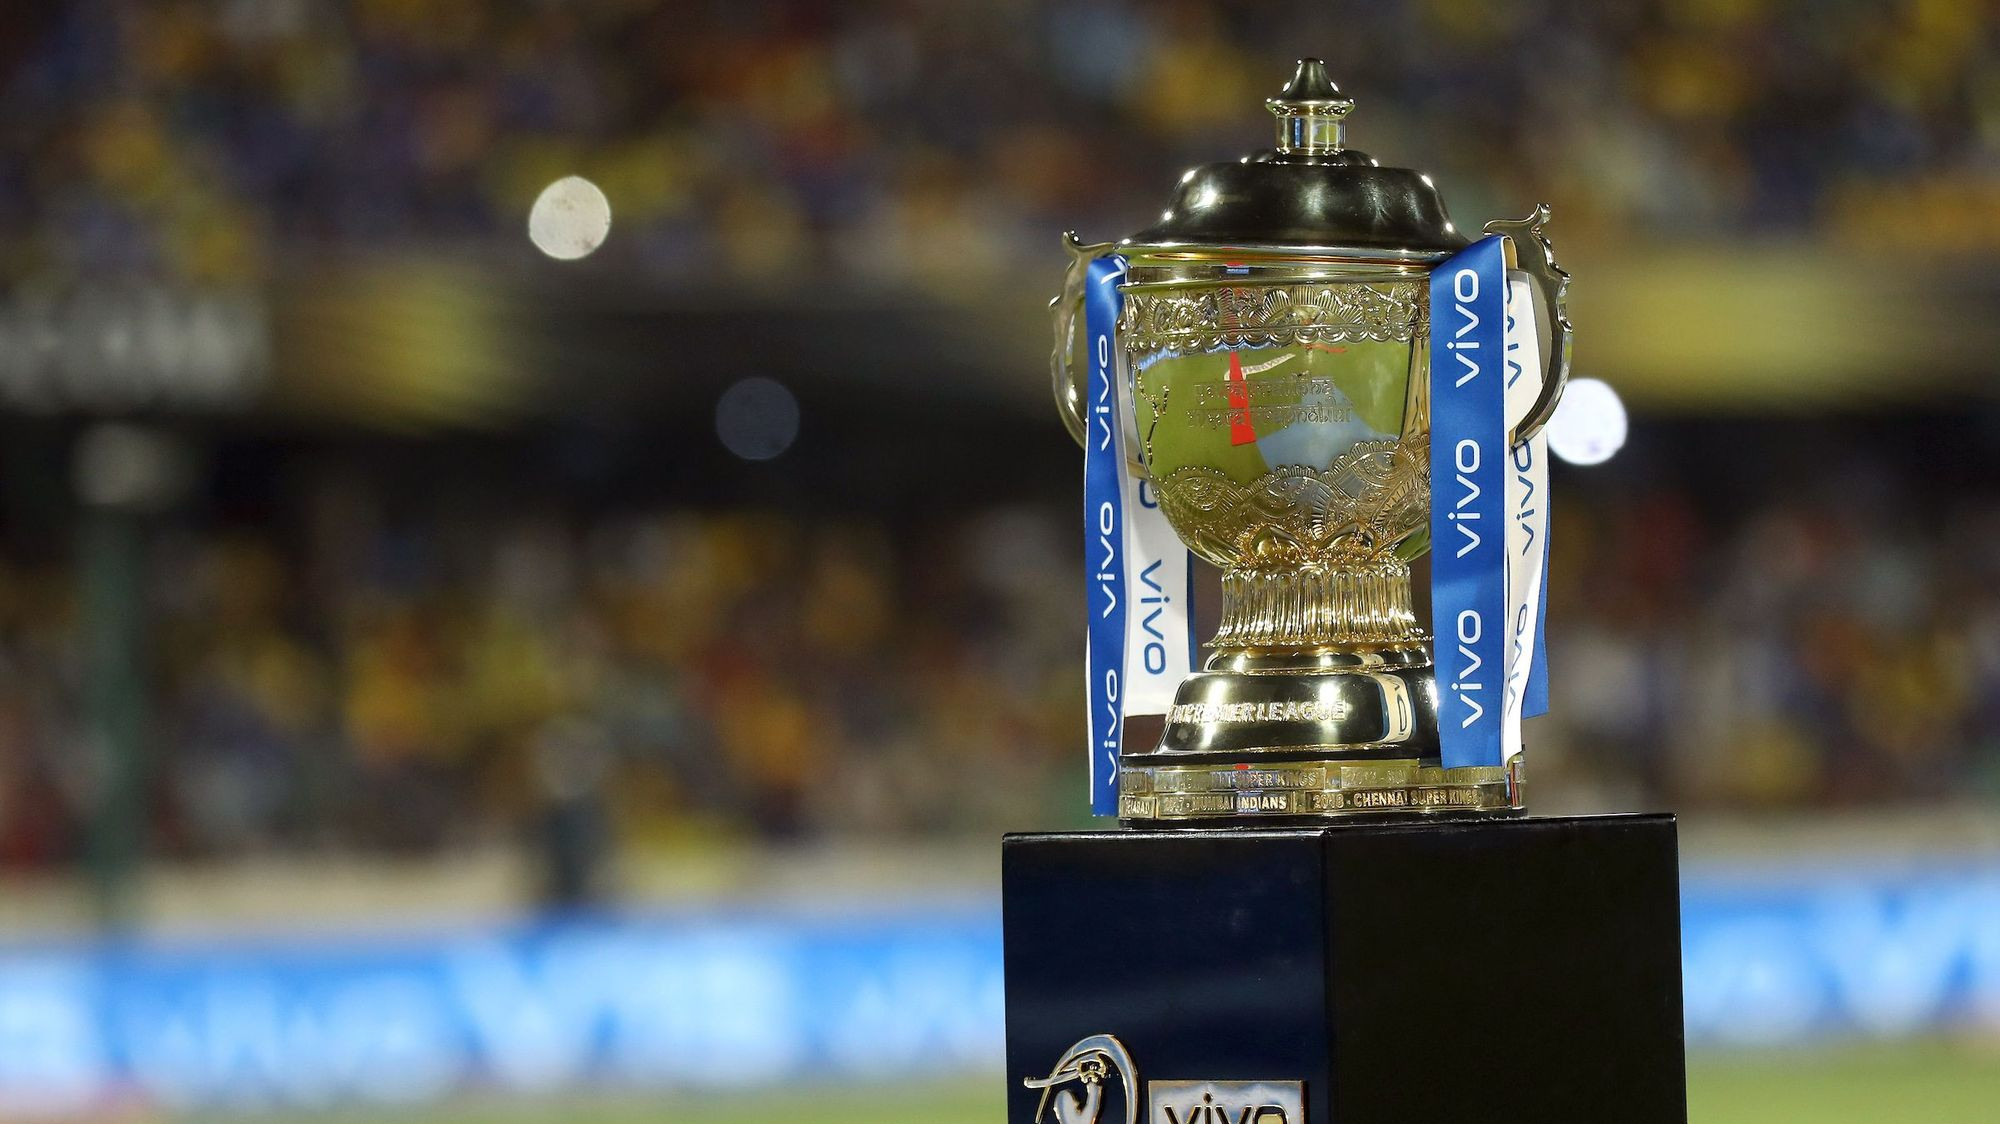 IPL 2021: GPS-based tracker which monitored players' movements found defective